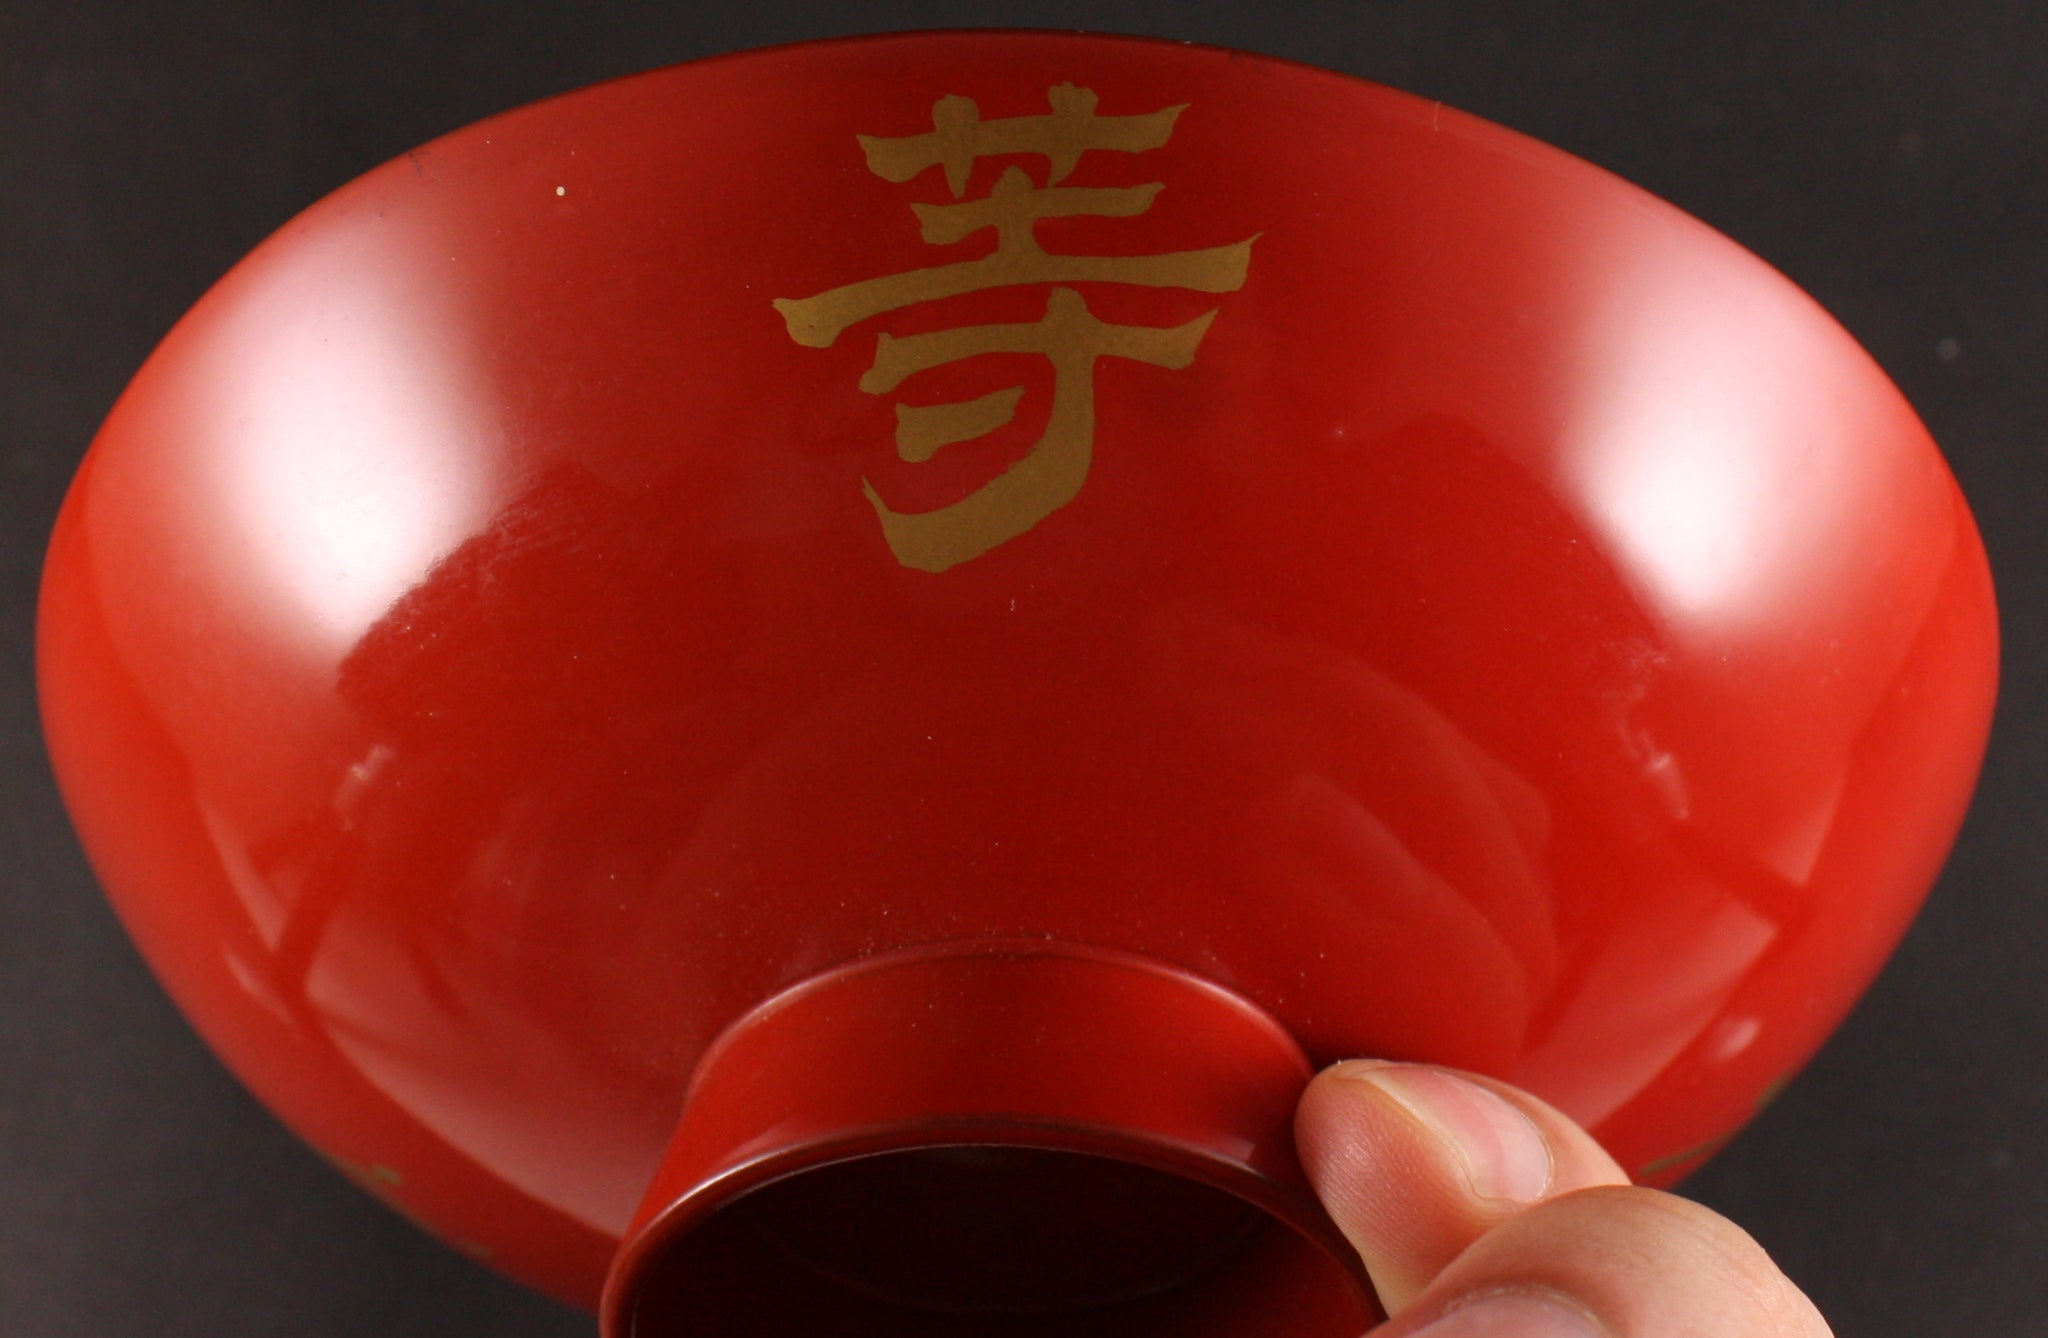 Very Rare Antique Japanese Military 1887 Marksmanship Award Lacquer Army Sake Cup